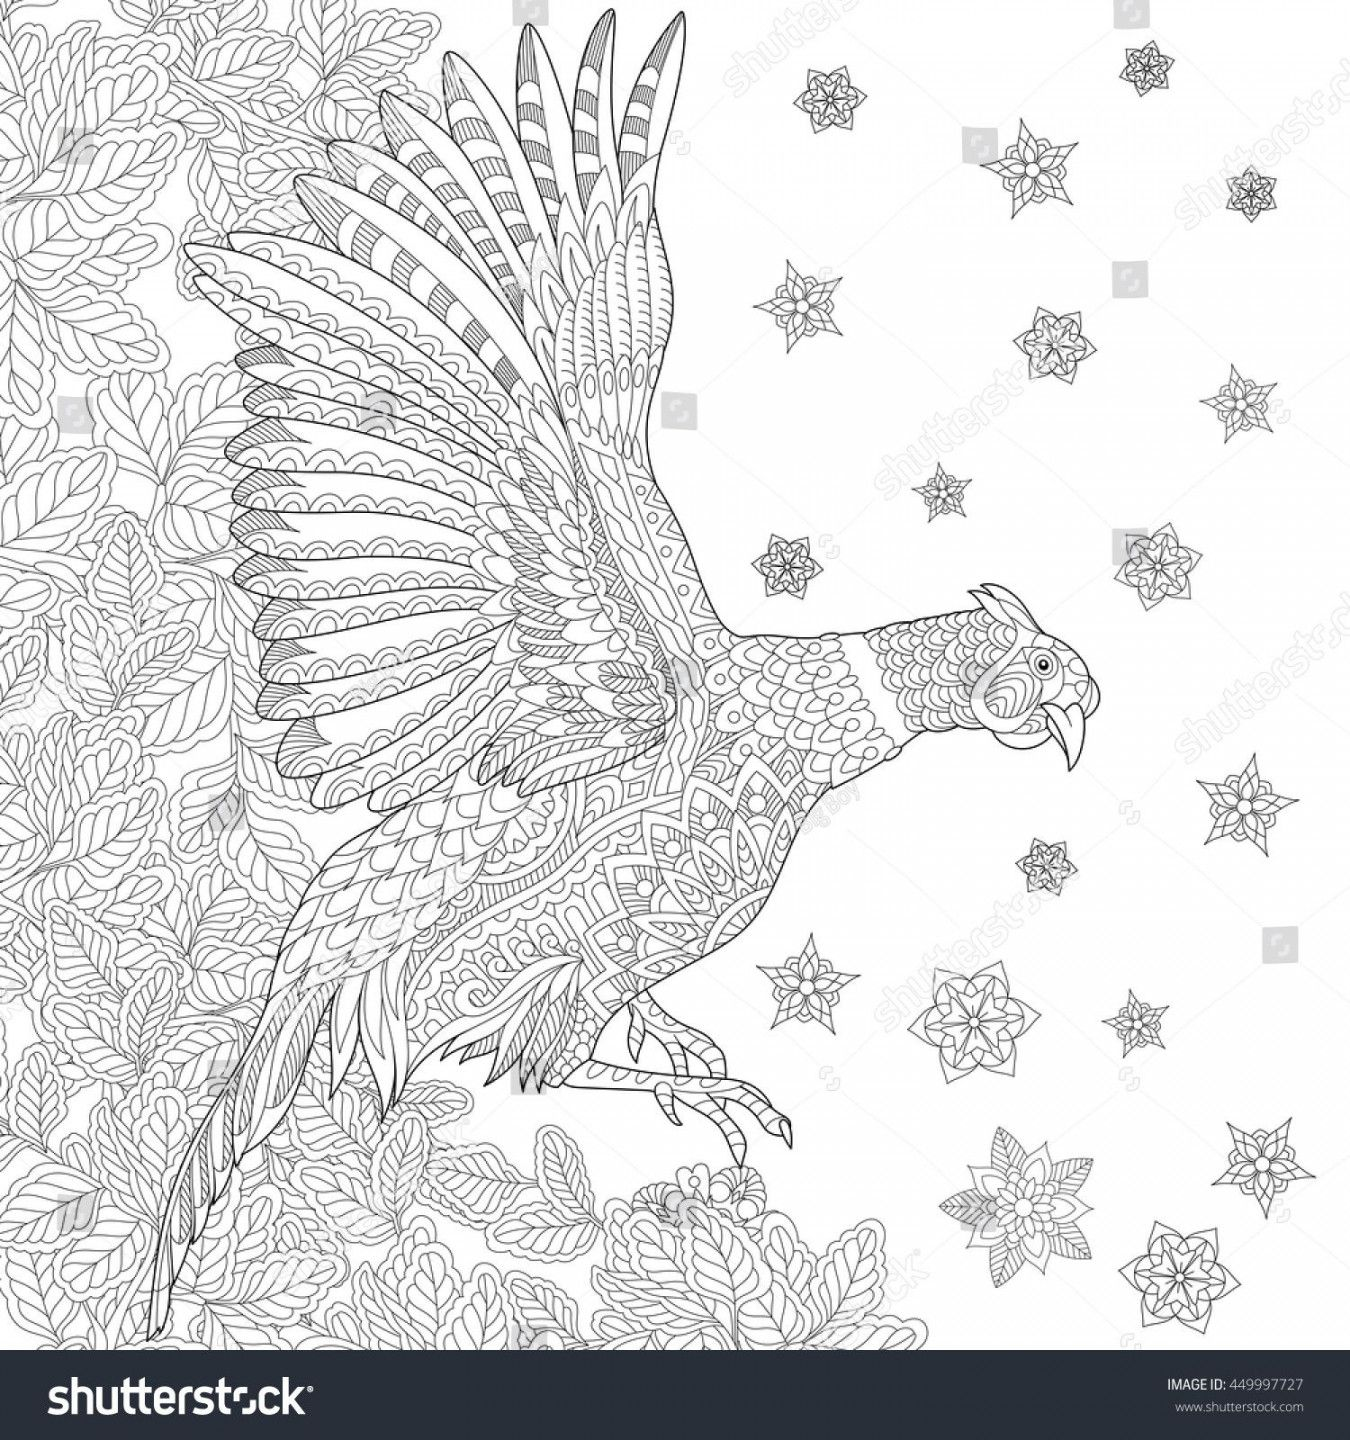 Phoenix Coloring Page Phoenix Coloring Pages Images Of Stock